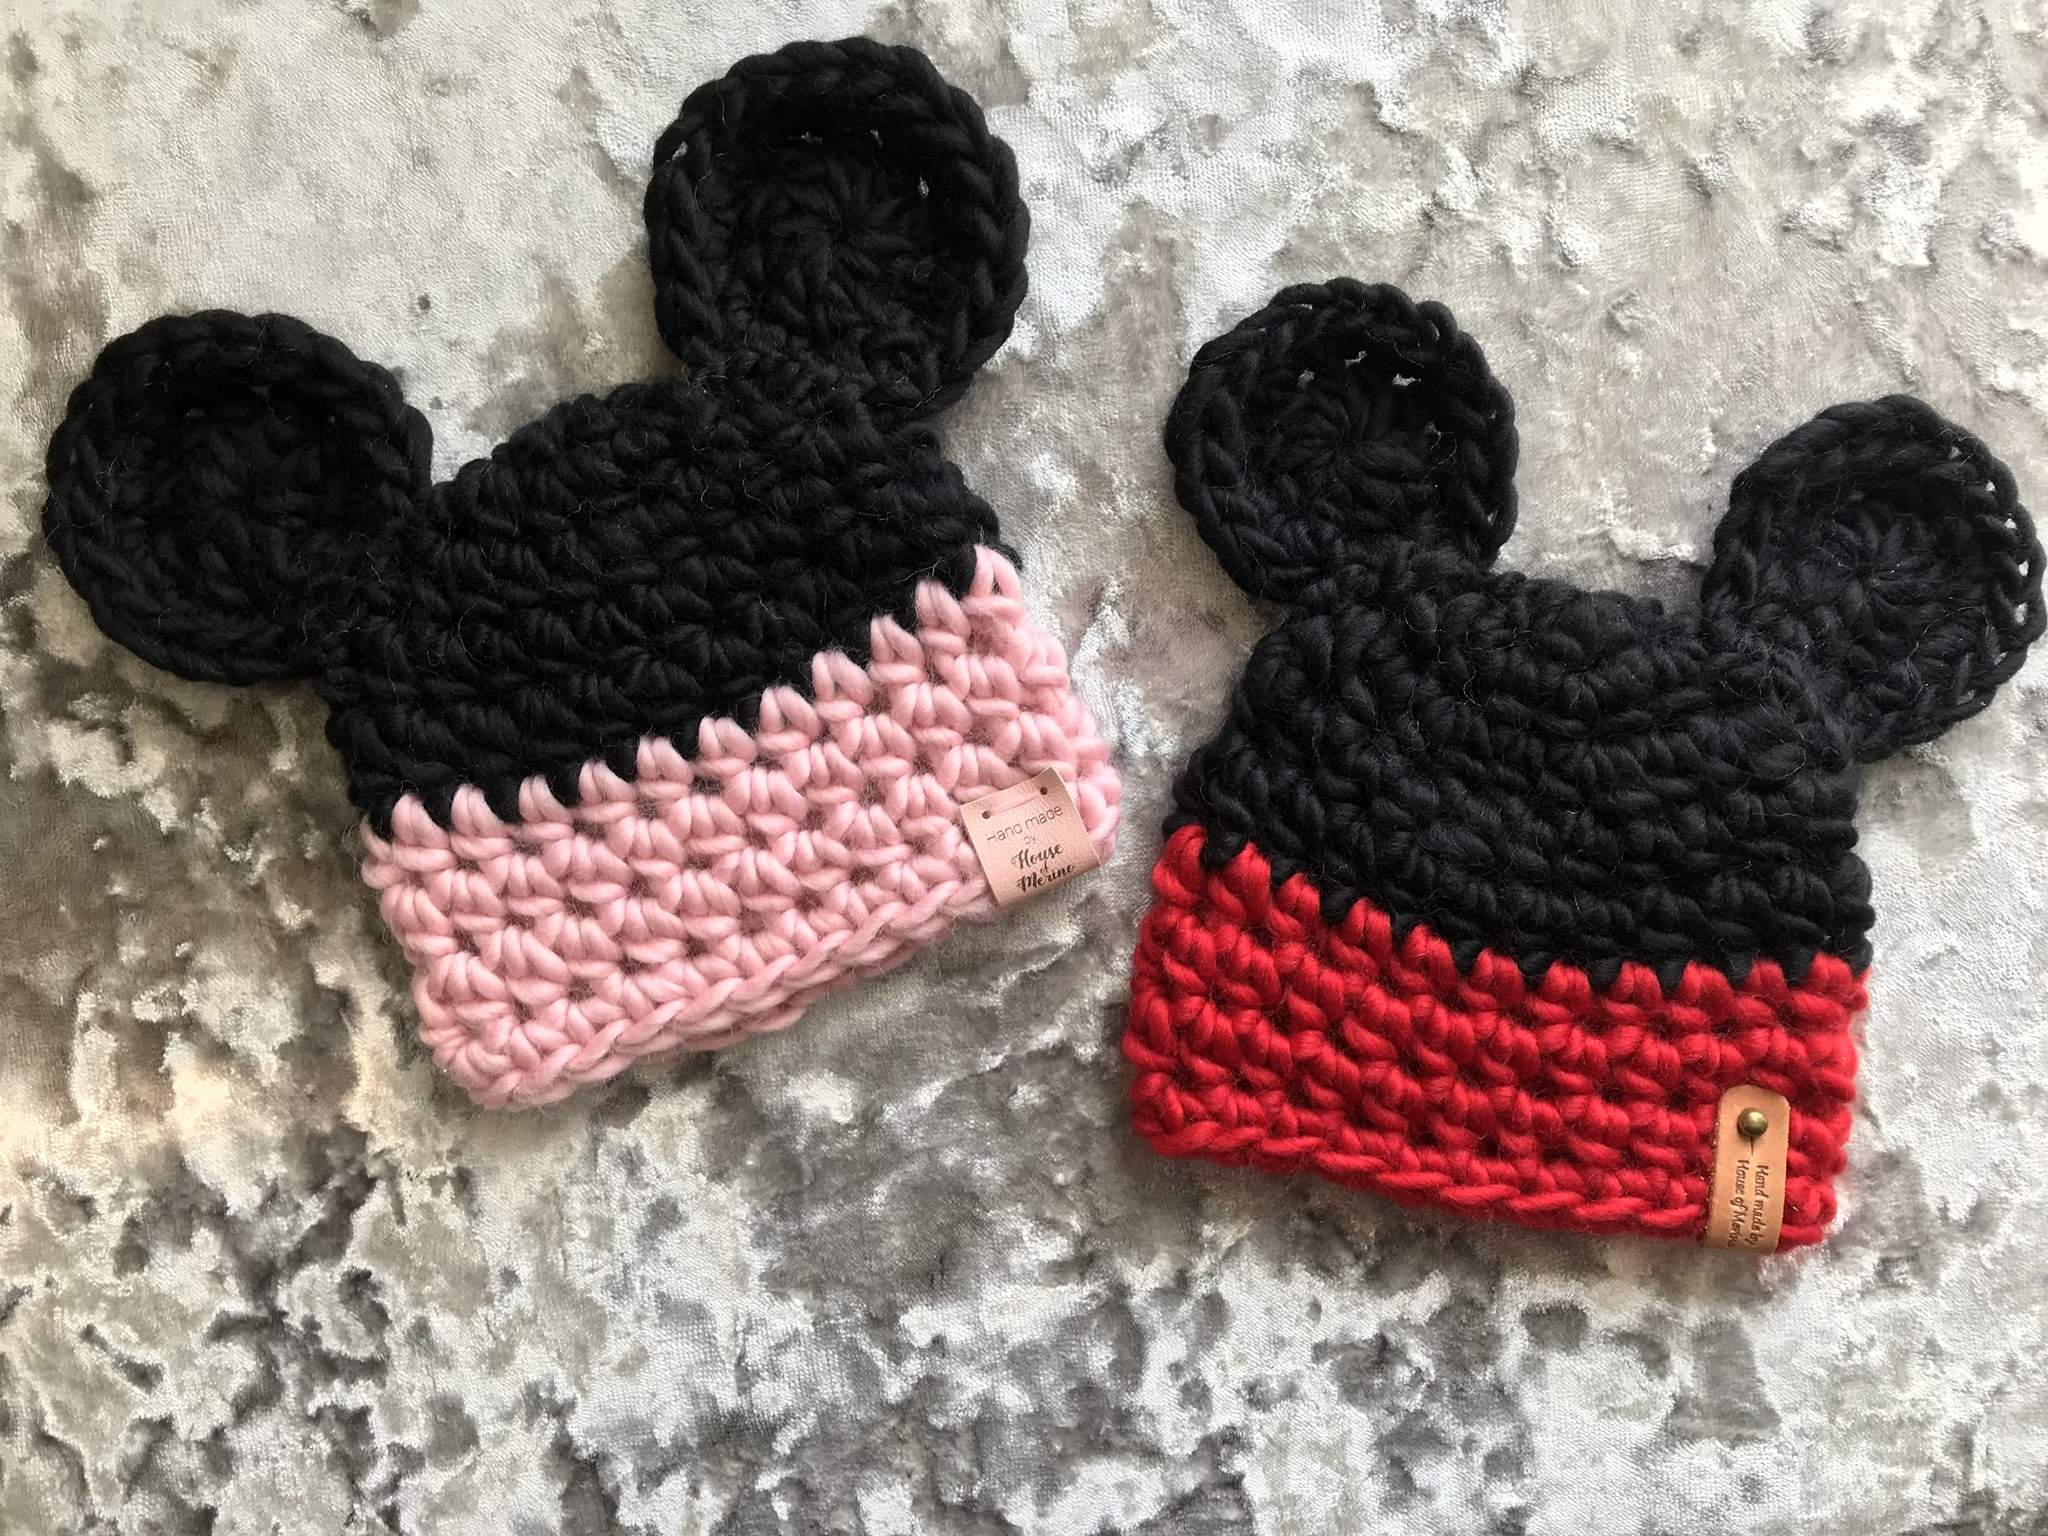 Merino Mickey and Minnie Mouse inspired beanies